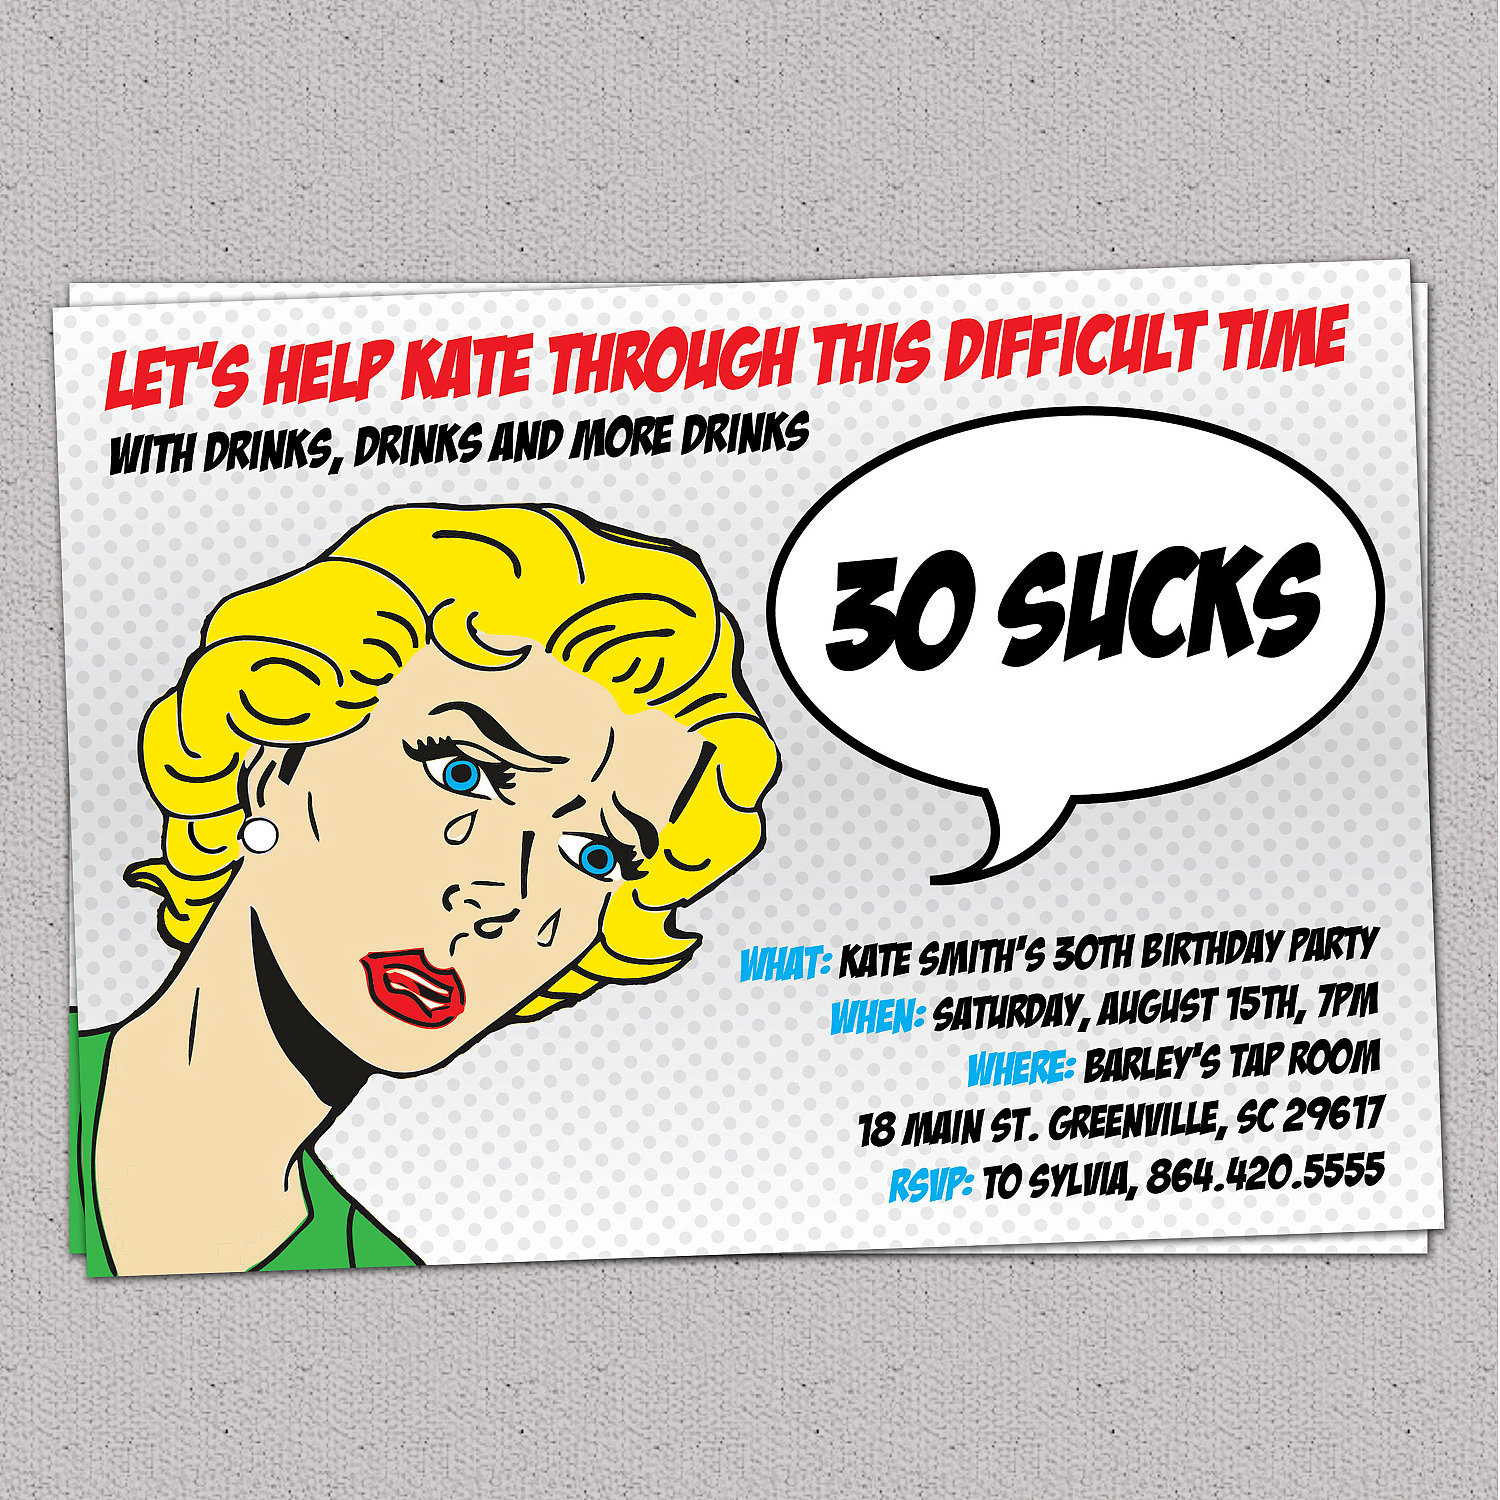 30 sucks birthday party invitation retro pulp woman funny 30 sucks birthday party invitation retro pulp woman funny thirty 30th filmwisefo